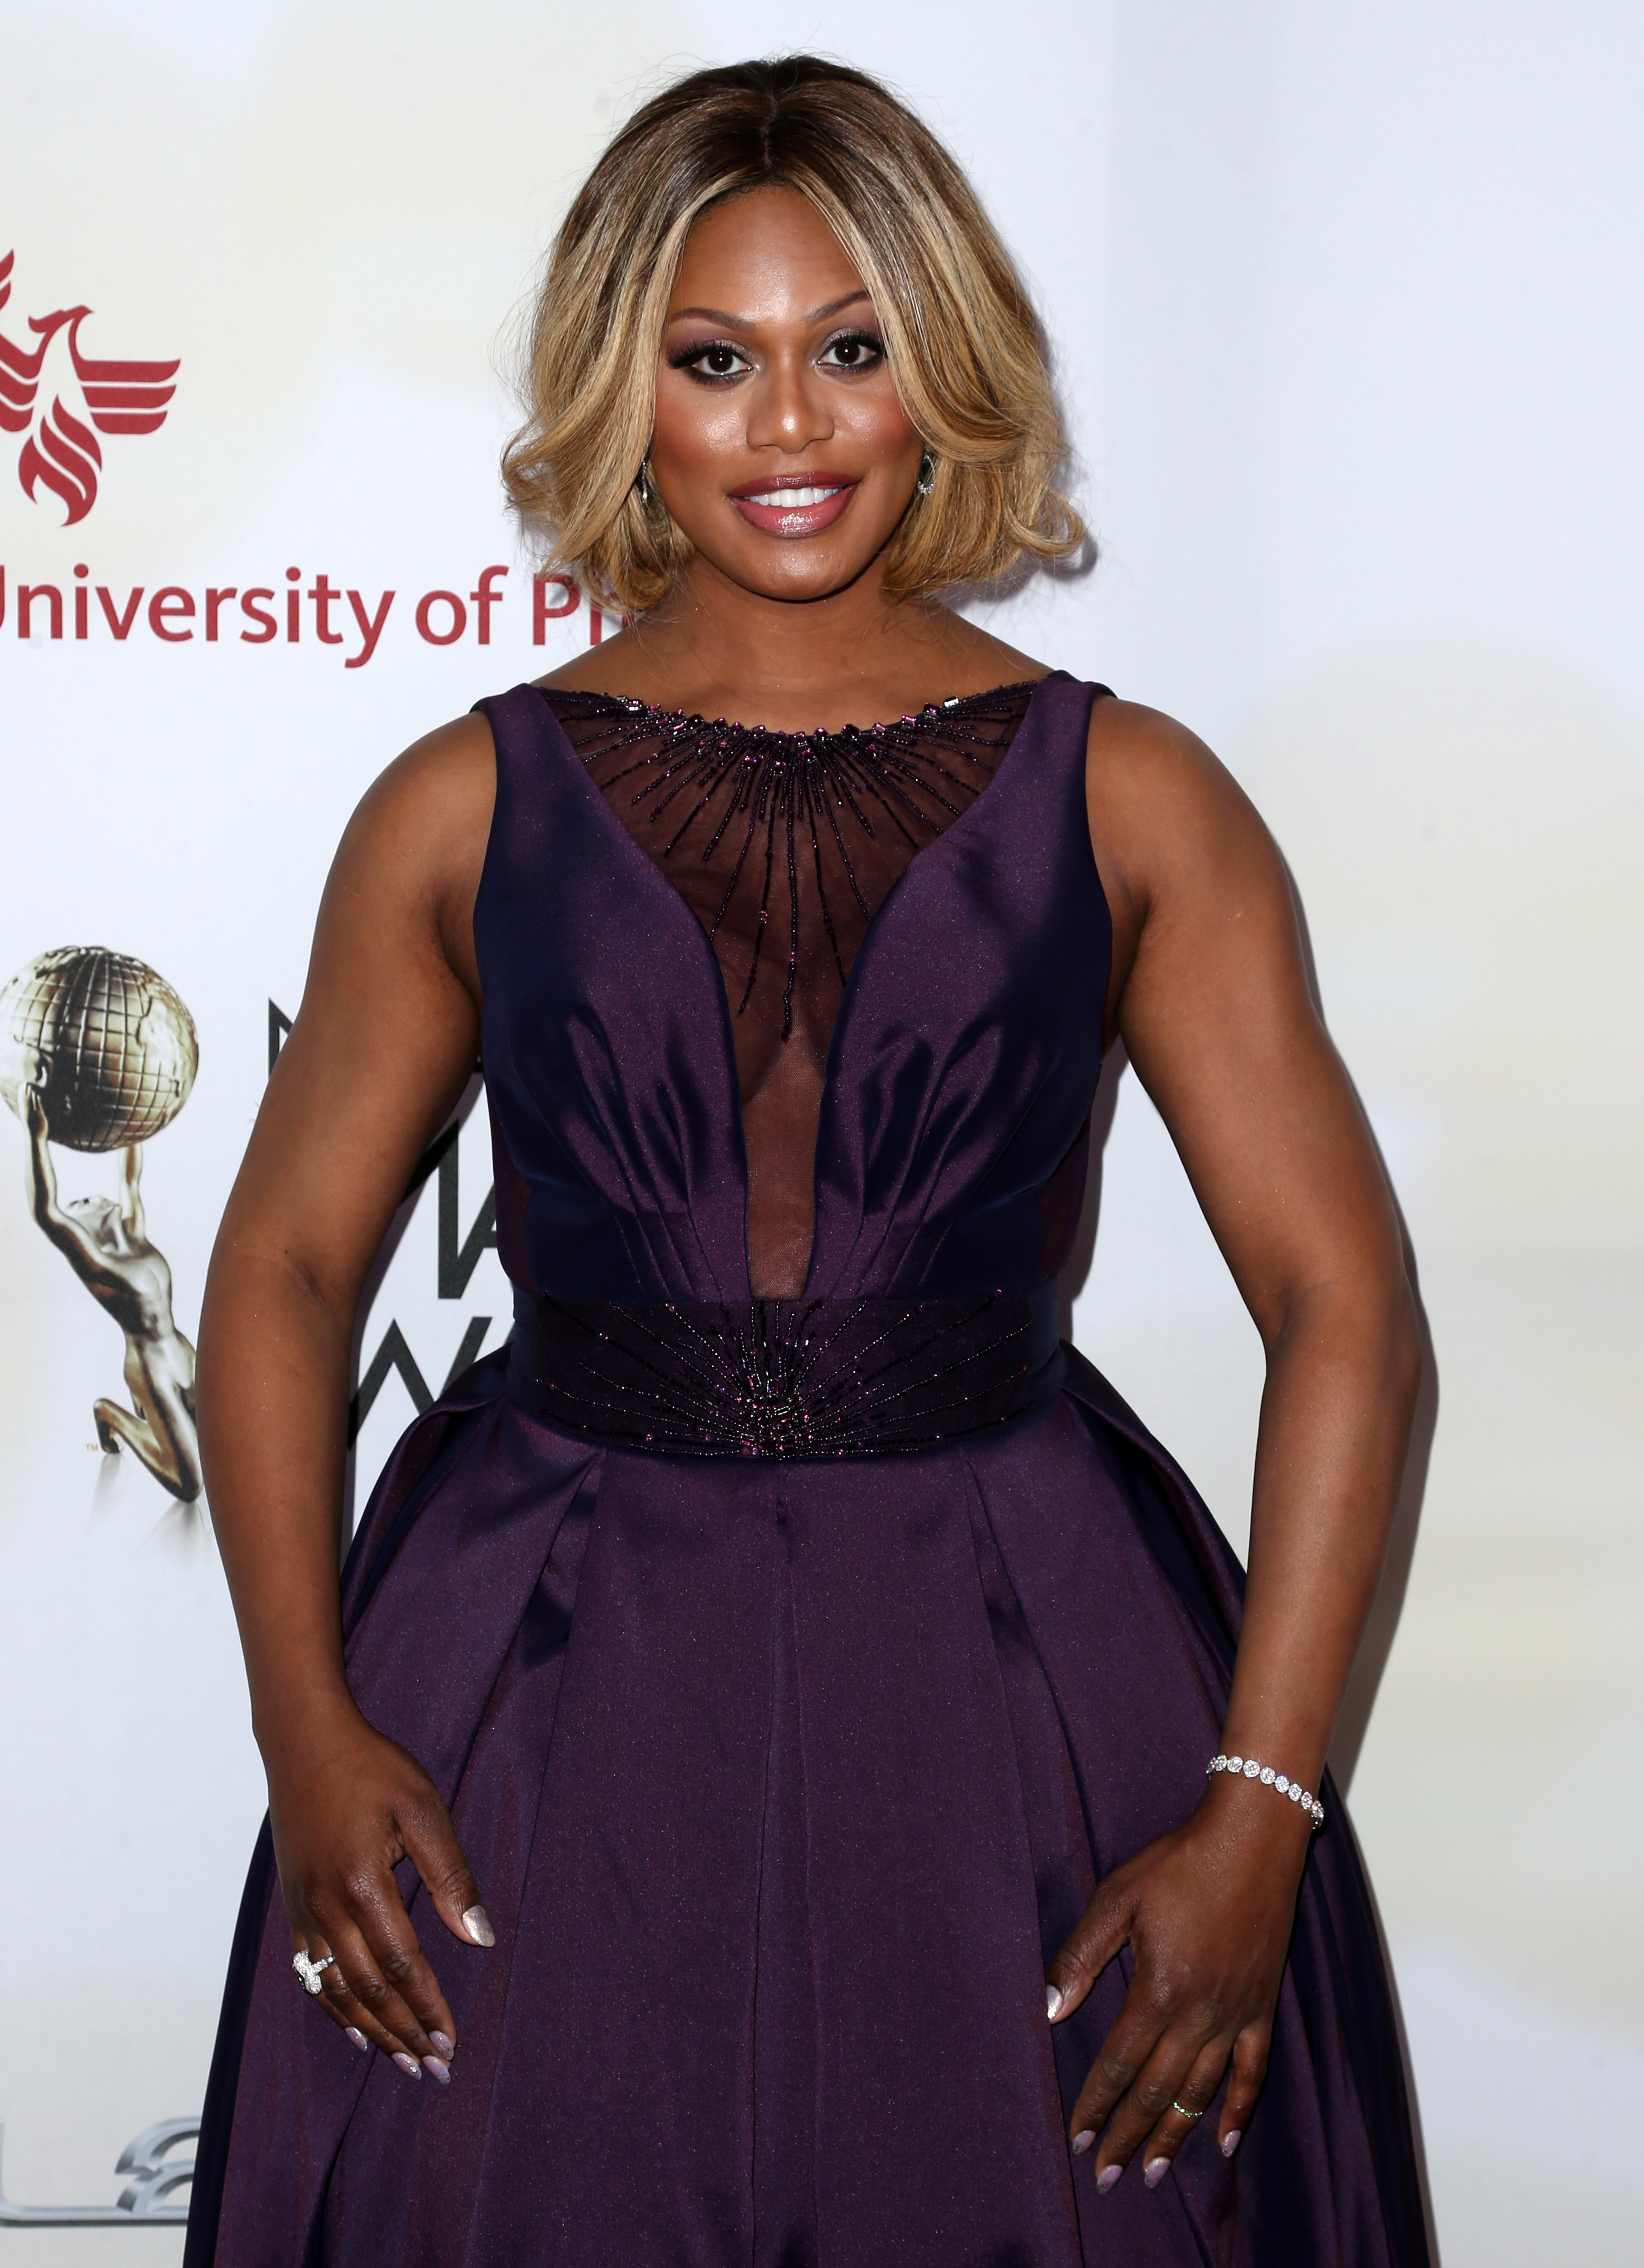 Actress Laverne Cox attends the 46th NAACP Image Awards  on Feb. 6, 2015 in Pasadena, Calif.